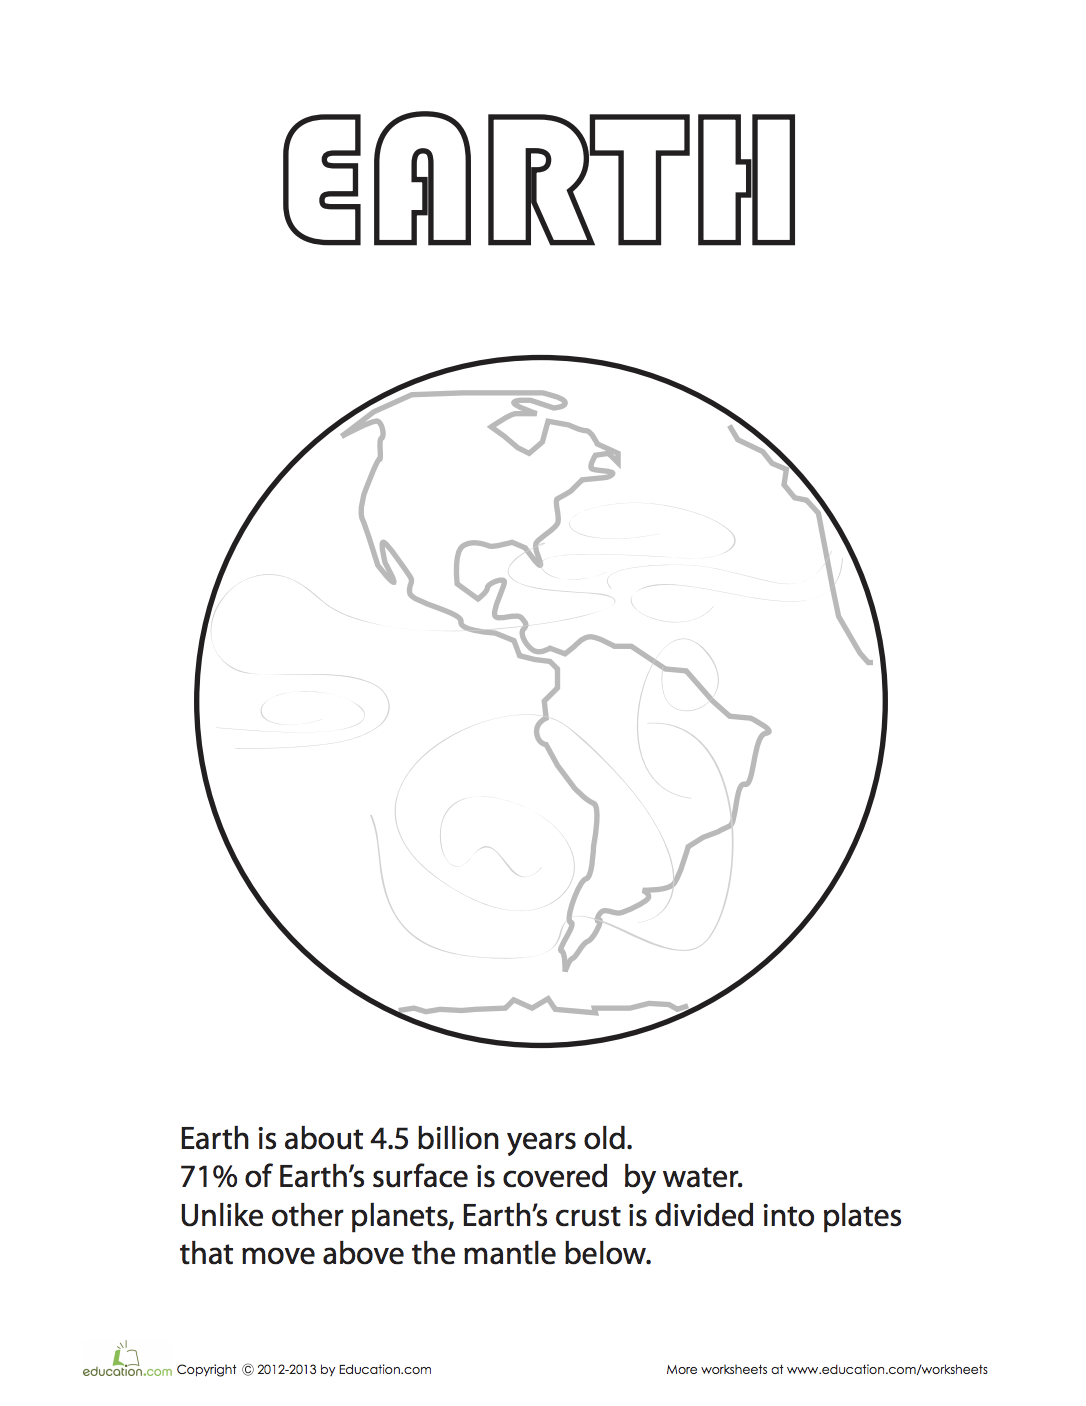 Earth Coloring Page With Images